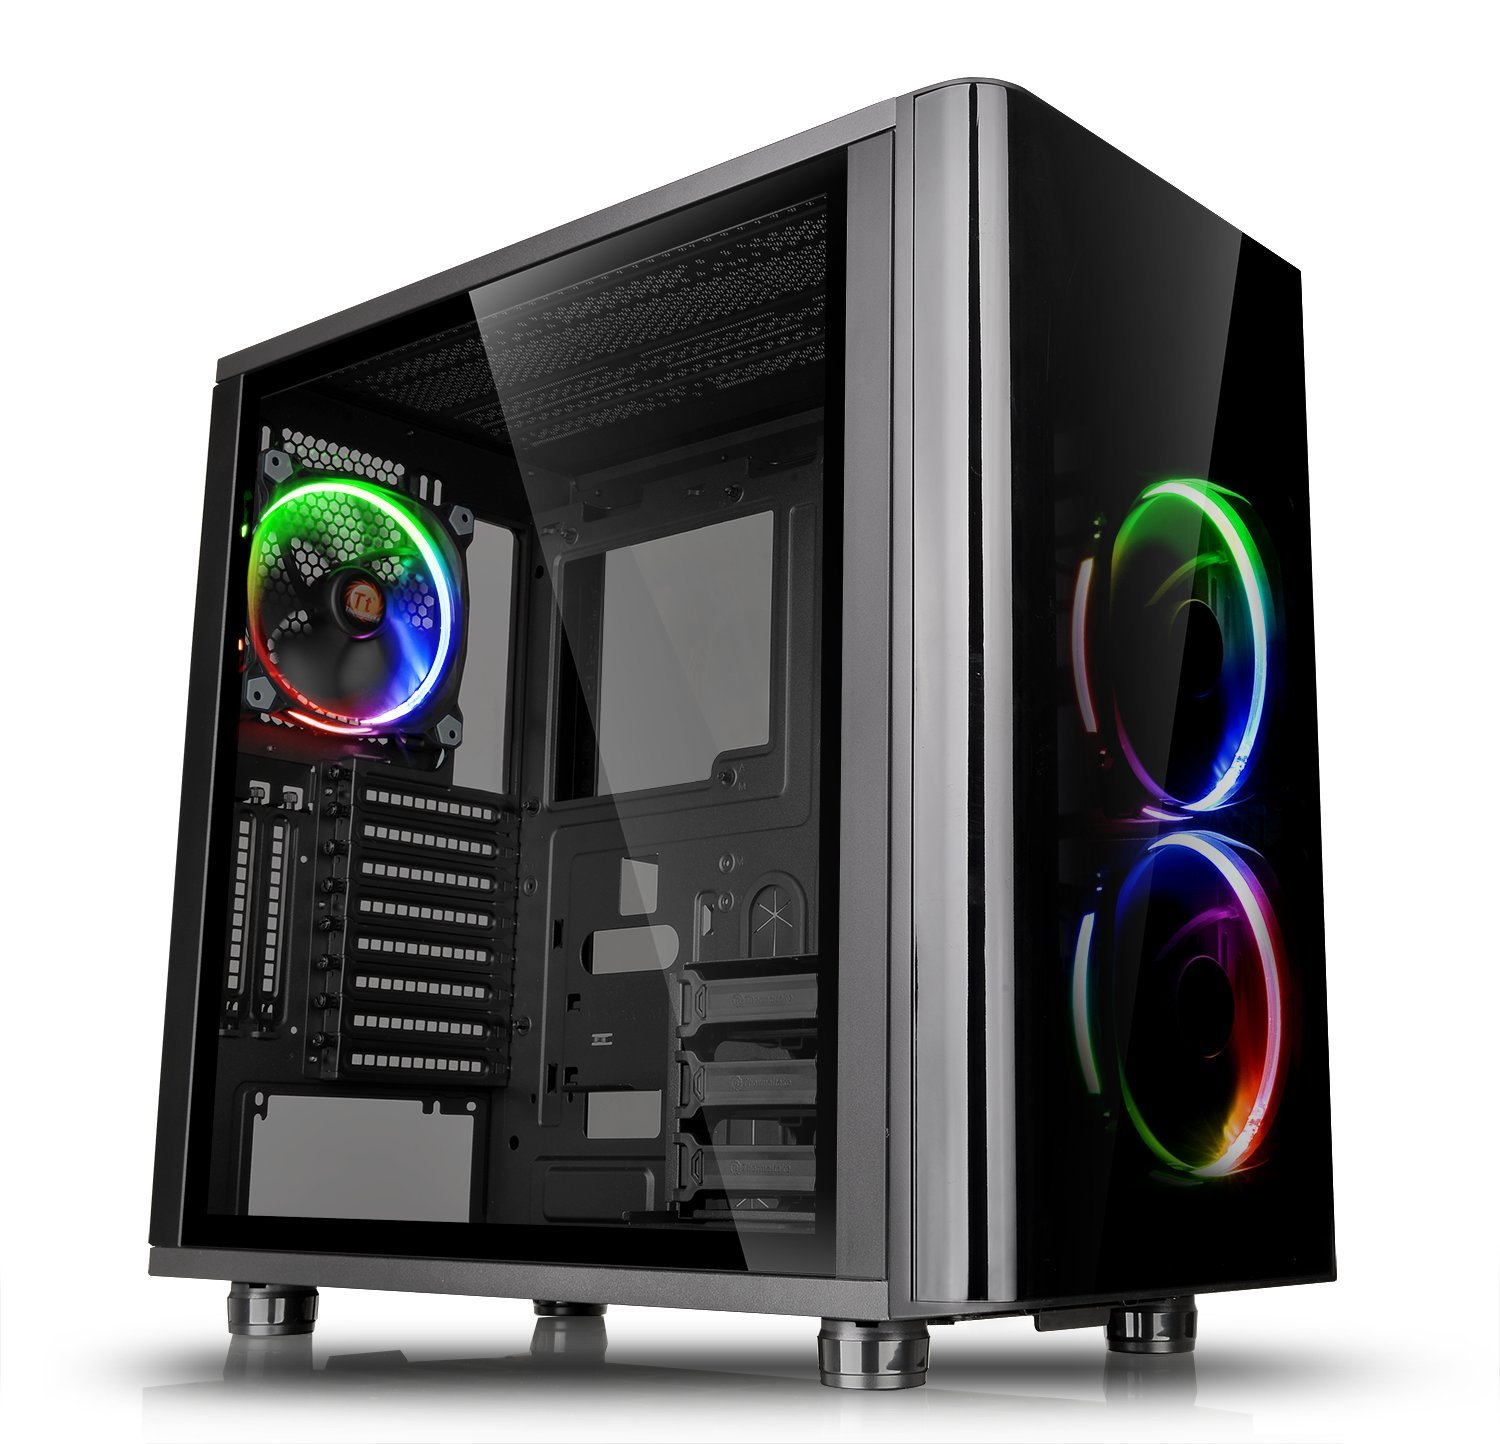 Thermaltake View 31 RGB Dual Tempered Glass SPCC ATX Mid Tower Tt LCS Certified Gaming Computer Case with 3 RGB LED Ring Fan Pre-installed CA-1H8-00M1WN-01 by Thermaltake